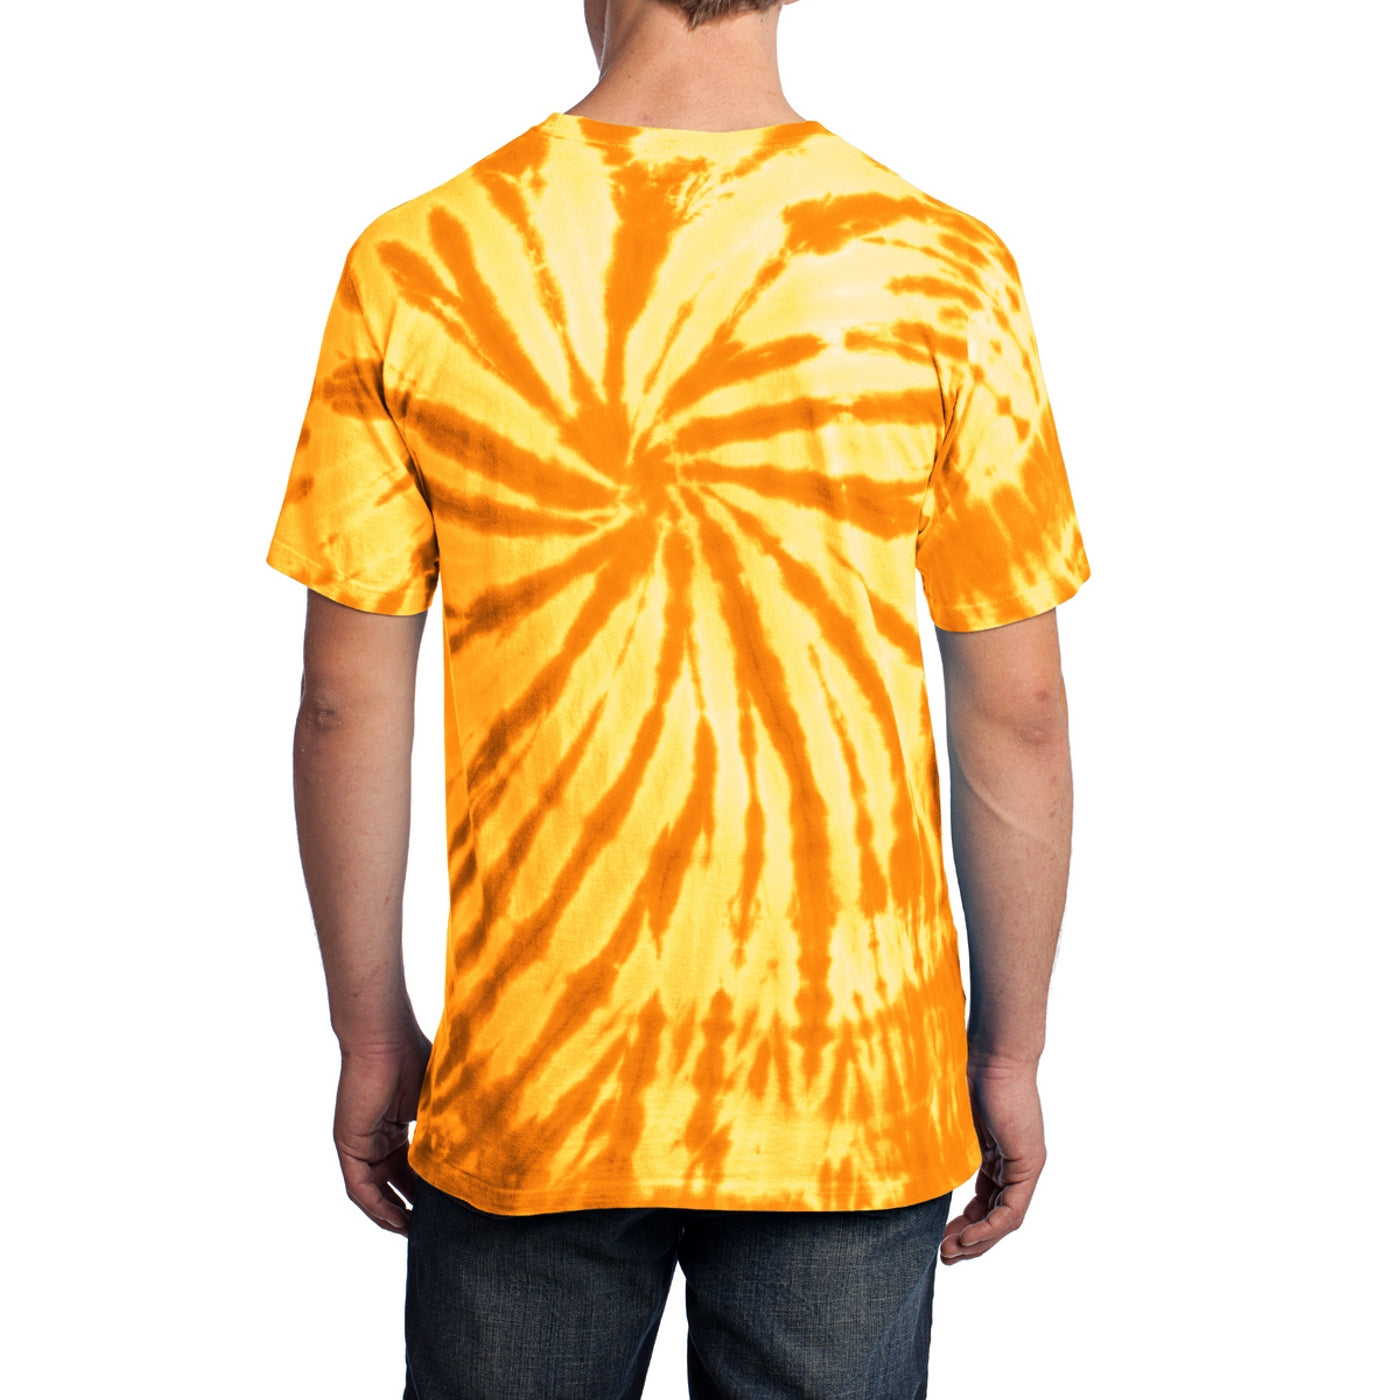 Men's Tie-Dye Tee -Gold - Back